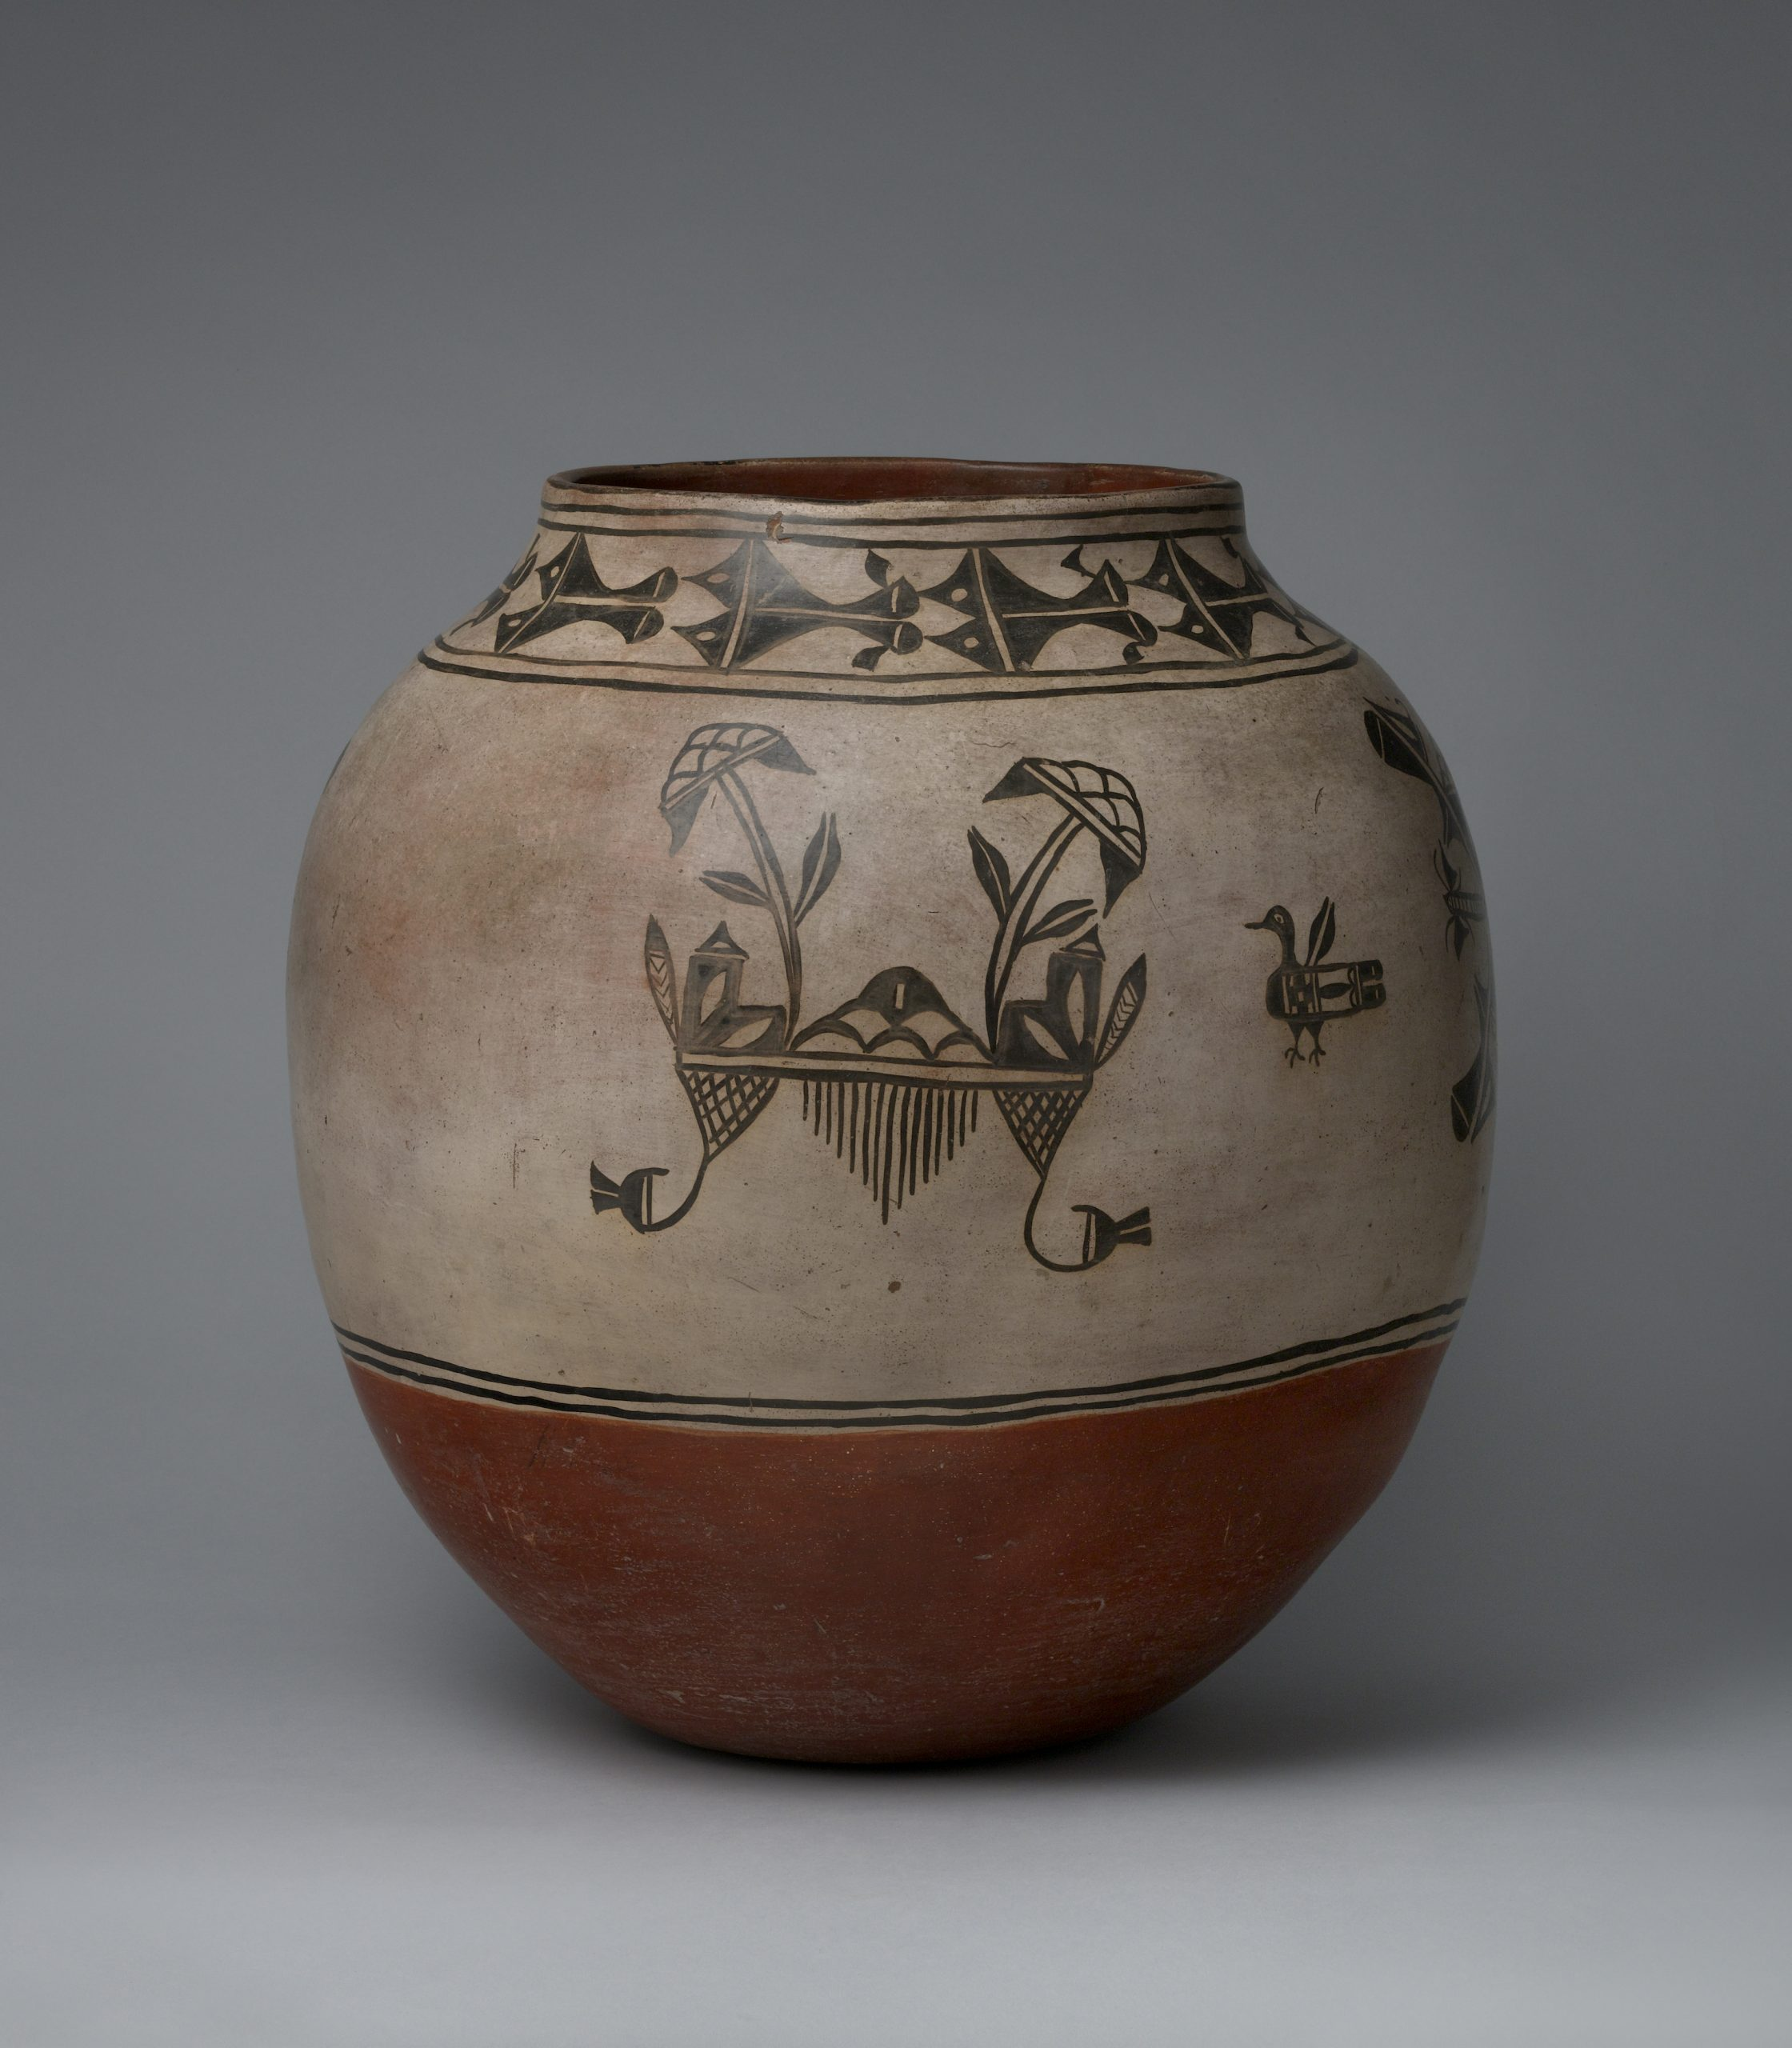 A Cochiti olla with floral designs, waterbird pictorials, and a rust bottom.